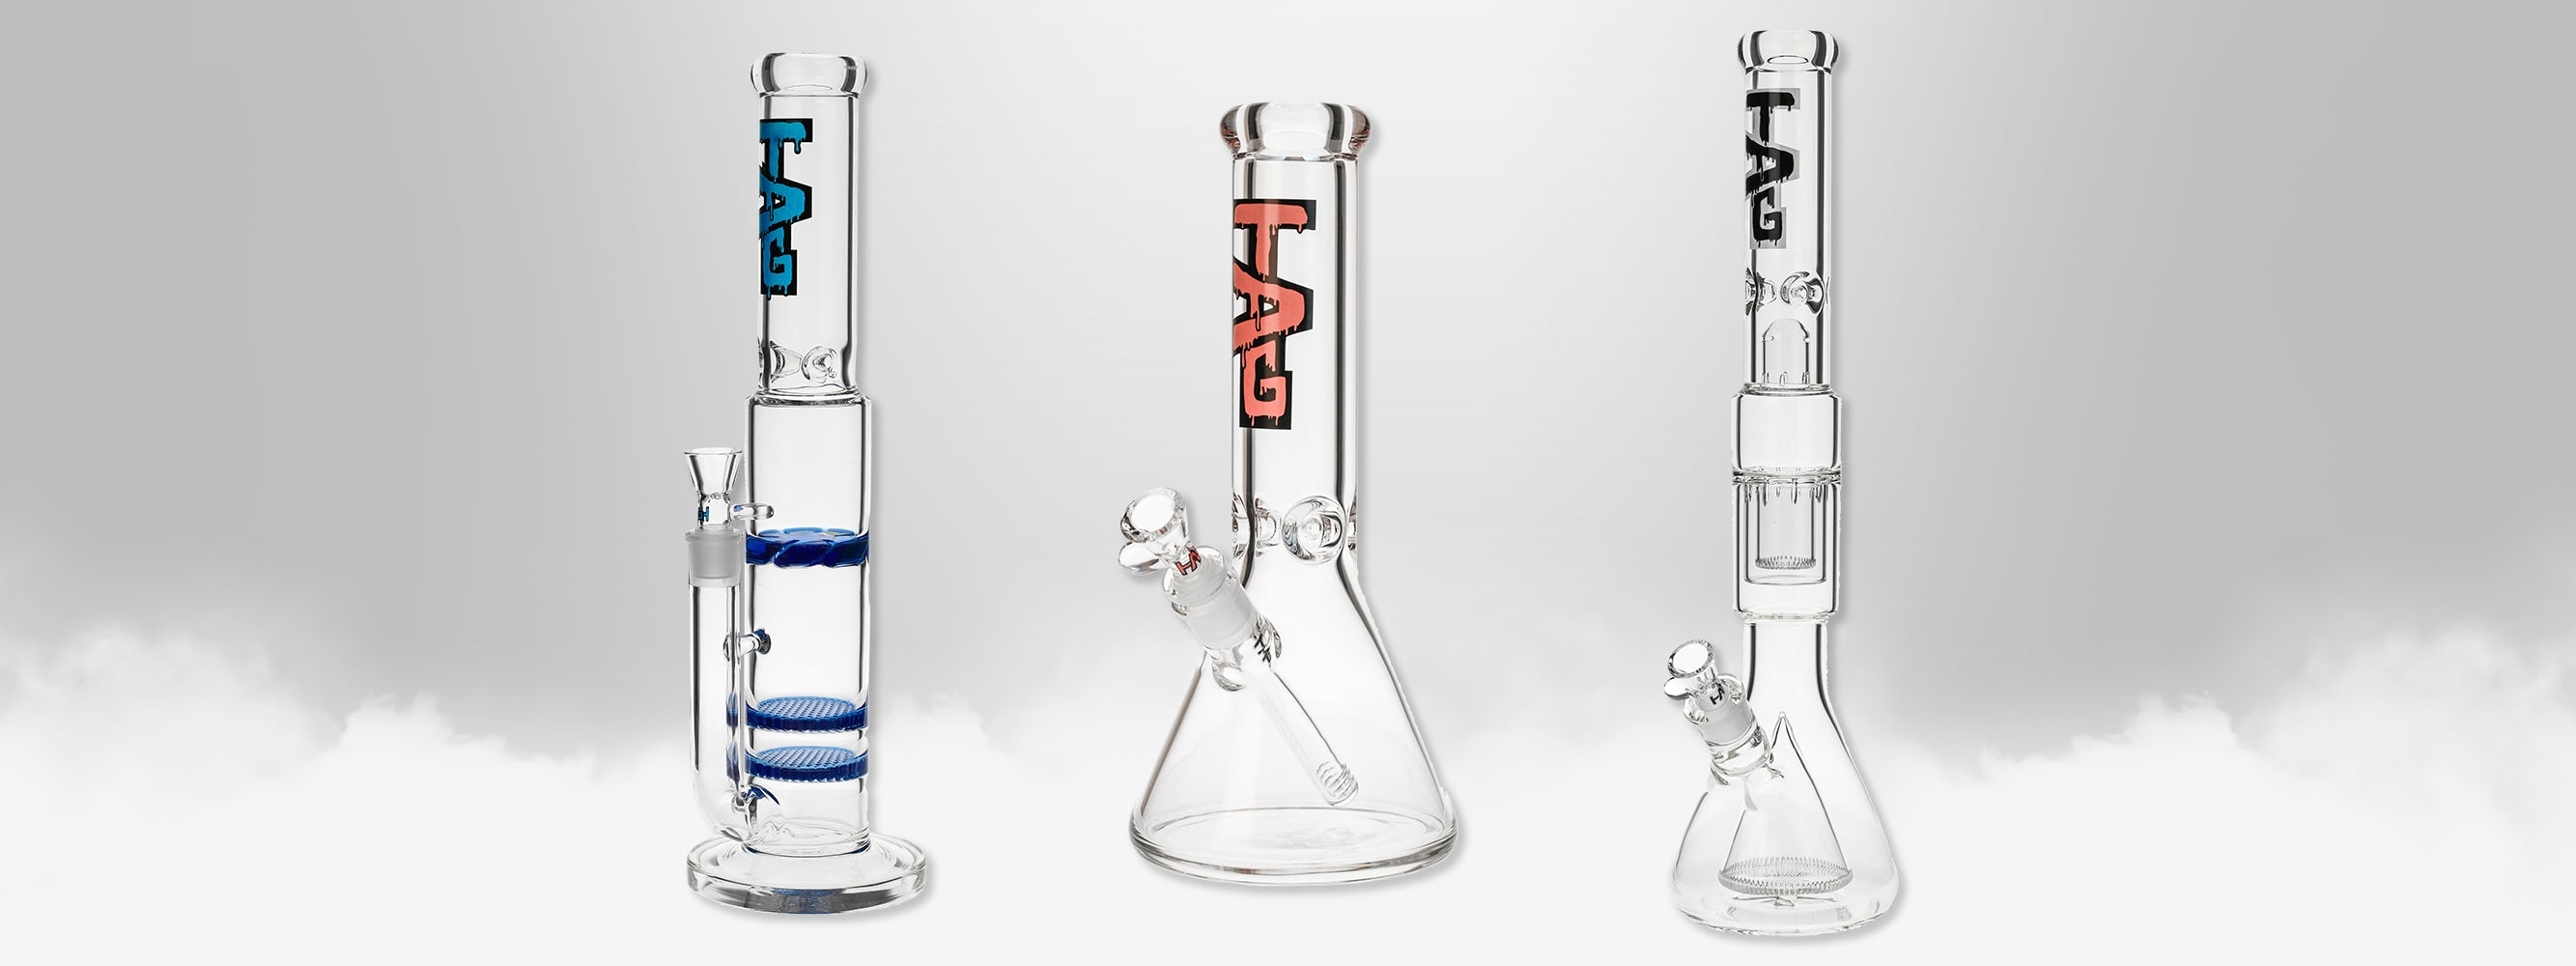 Water Pipe Buying Guide - Everything You Need to Know